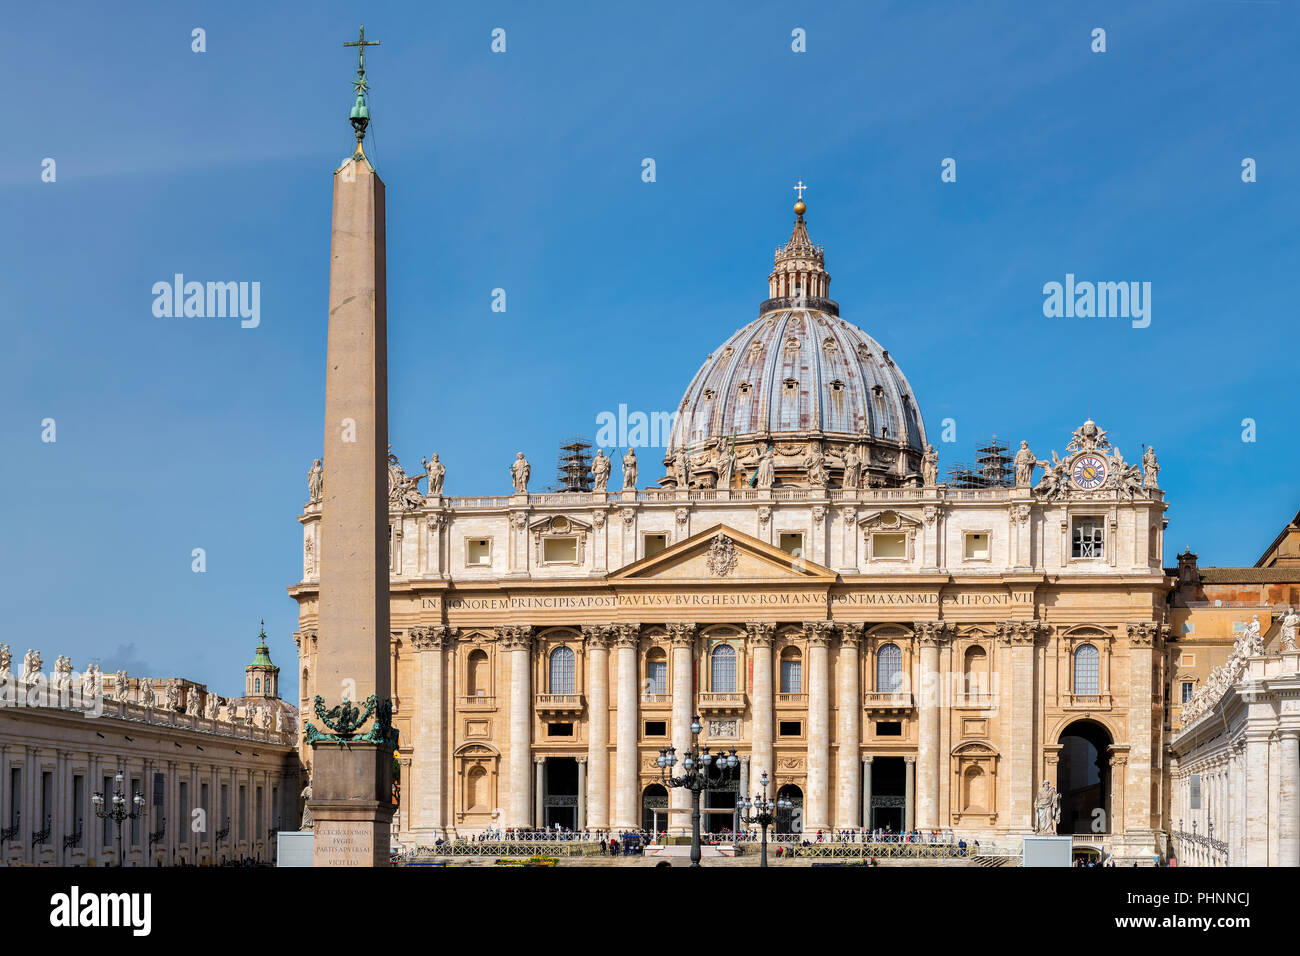 Front view of St. Peters basilica from St. Peter's square in Vatican City, Vatican. - Stock Image